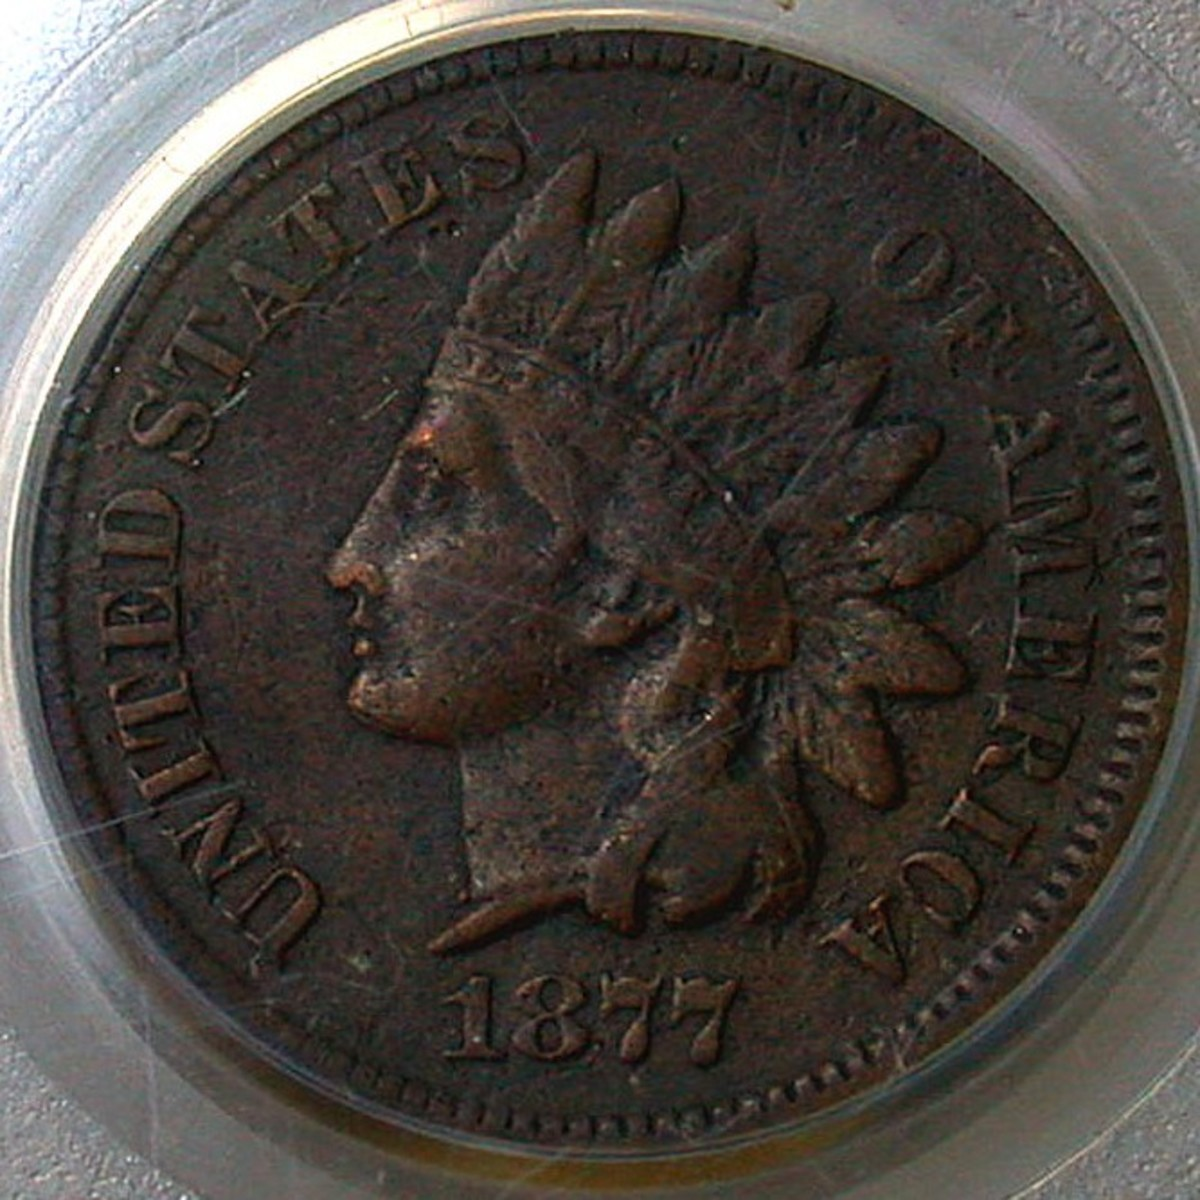 Extremely Rare 1877 Indian Head Penny. Photo Courtesy Coinpage.com